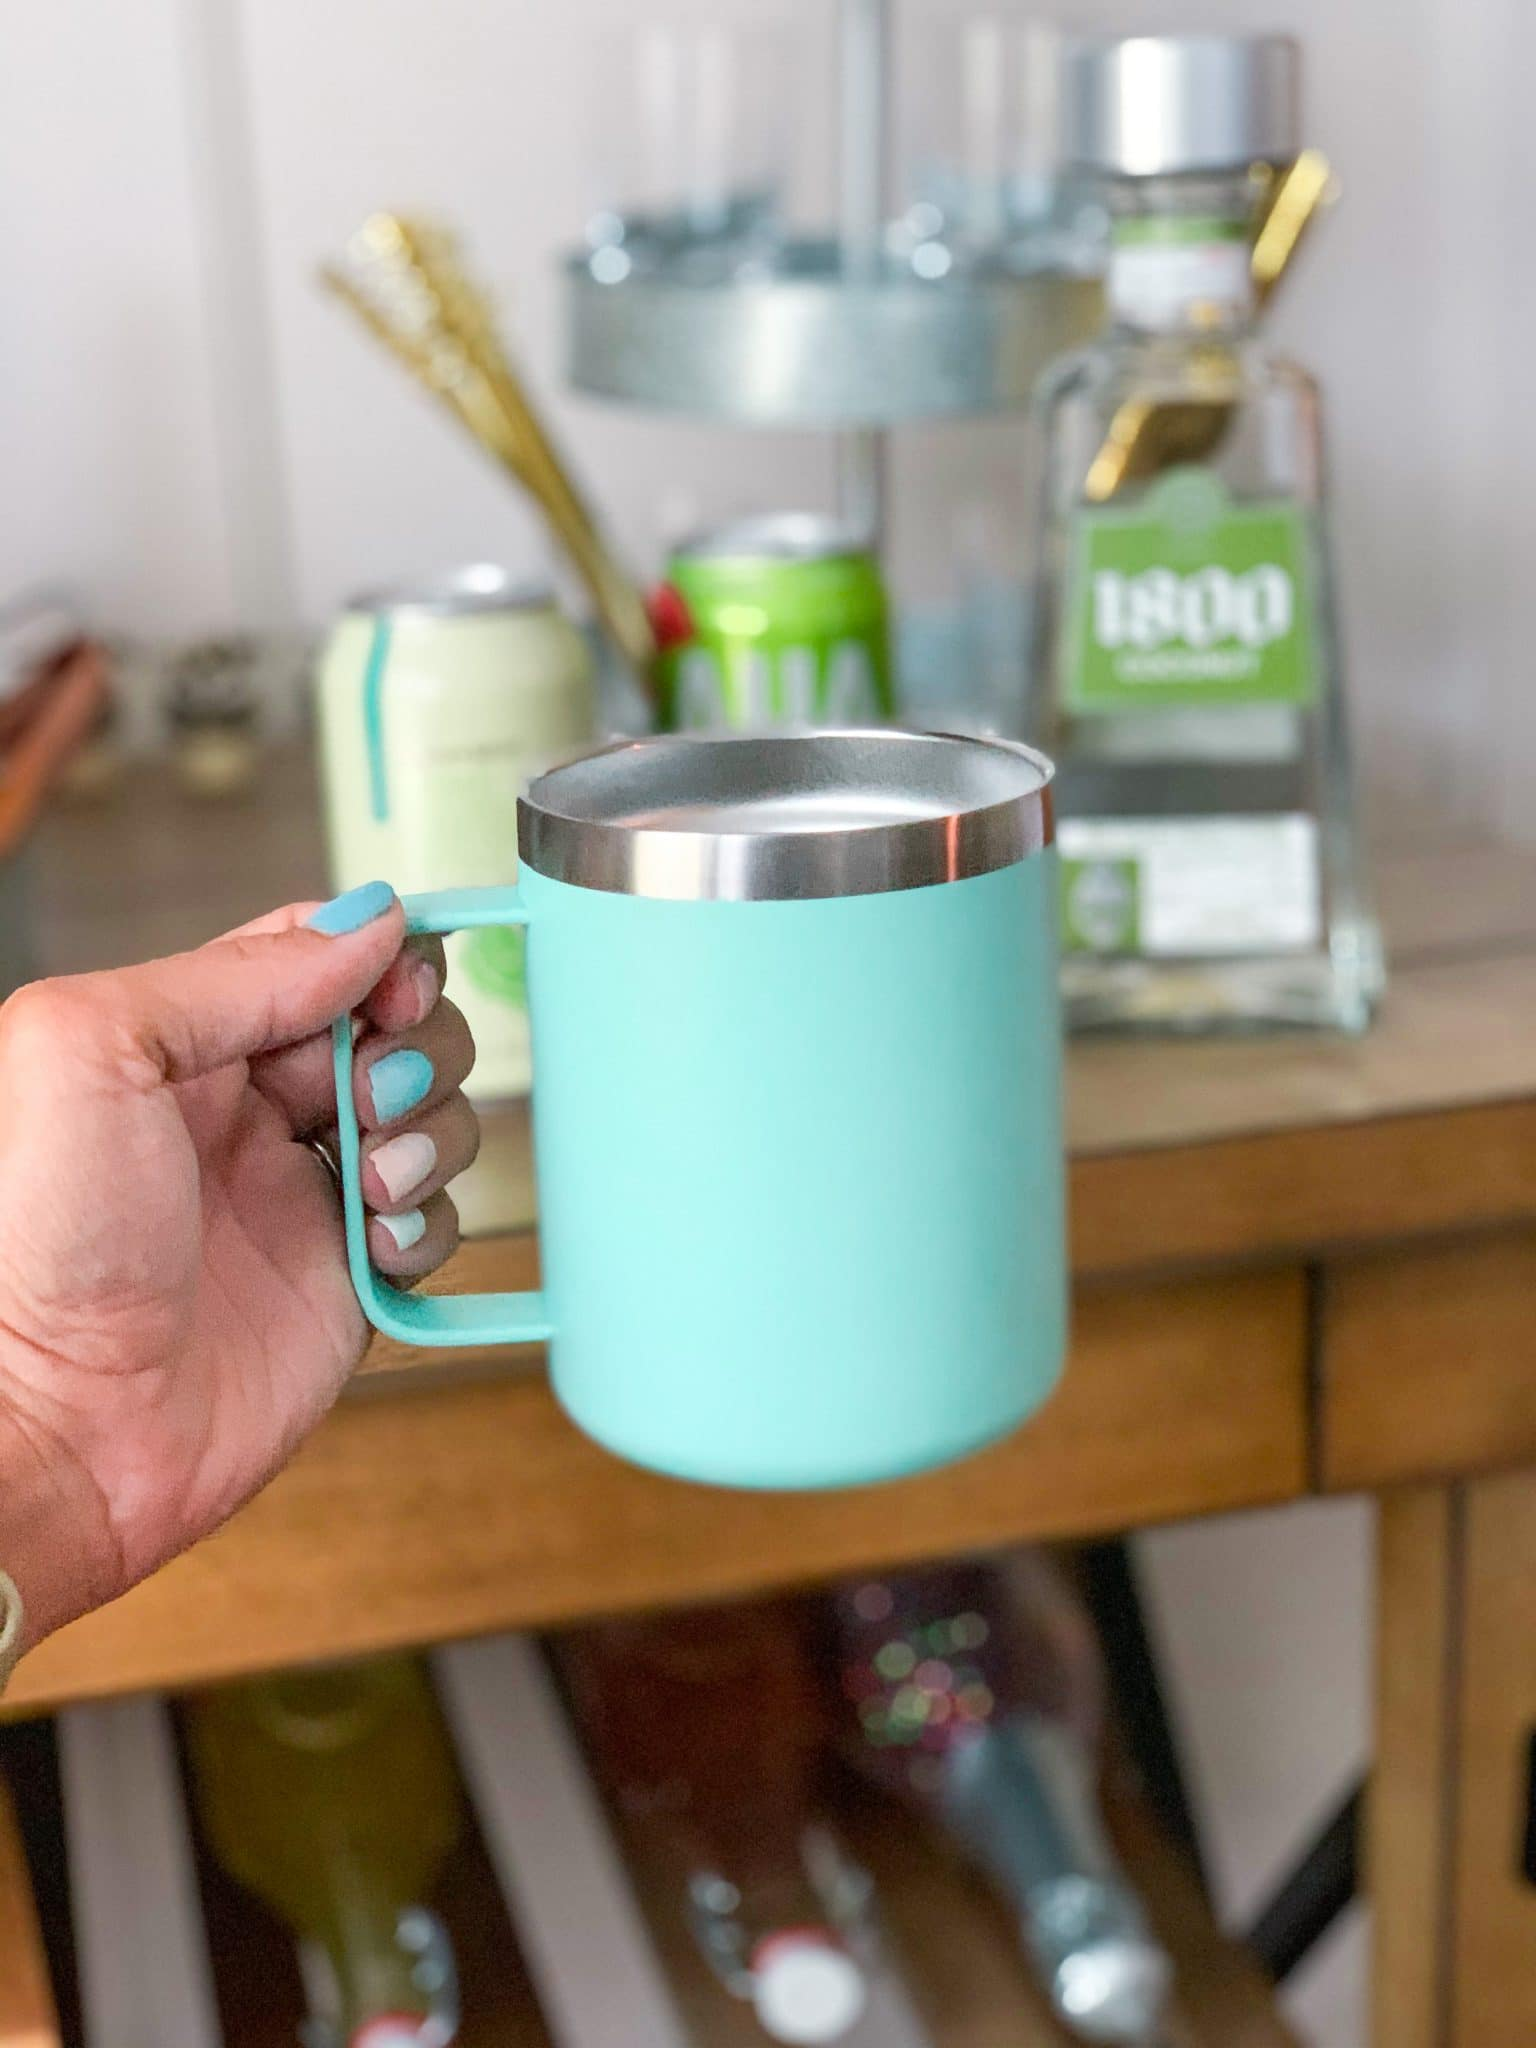 Similar for less Yeti insulated mug, Stilettos and Diapers